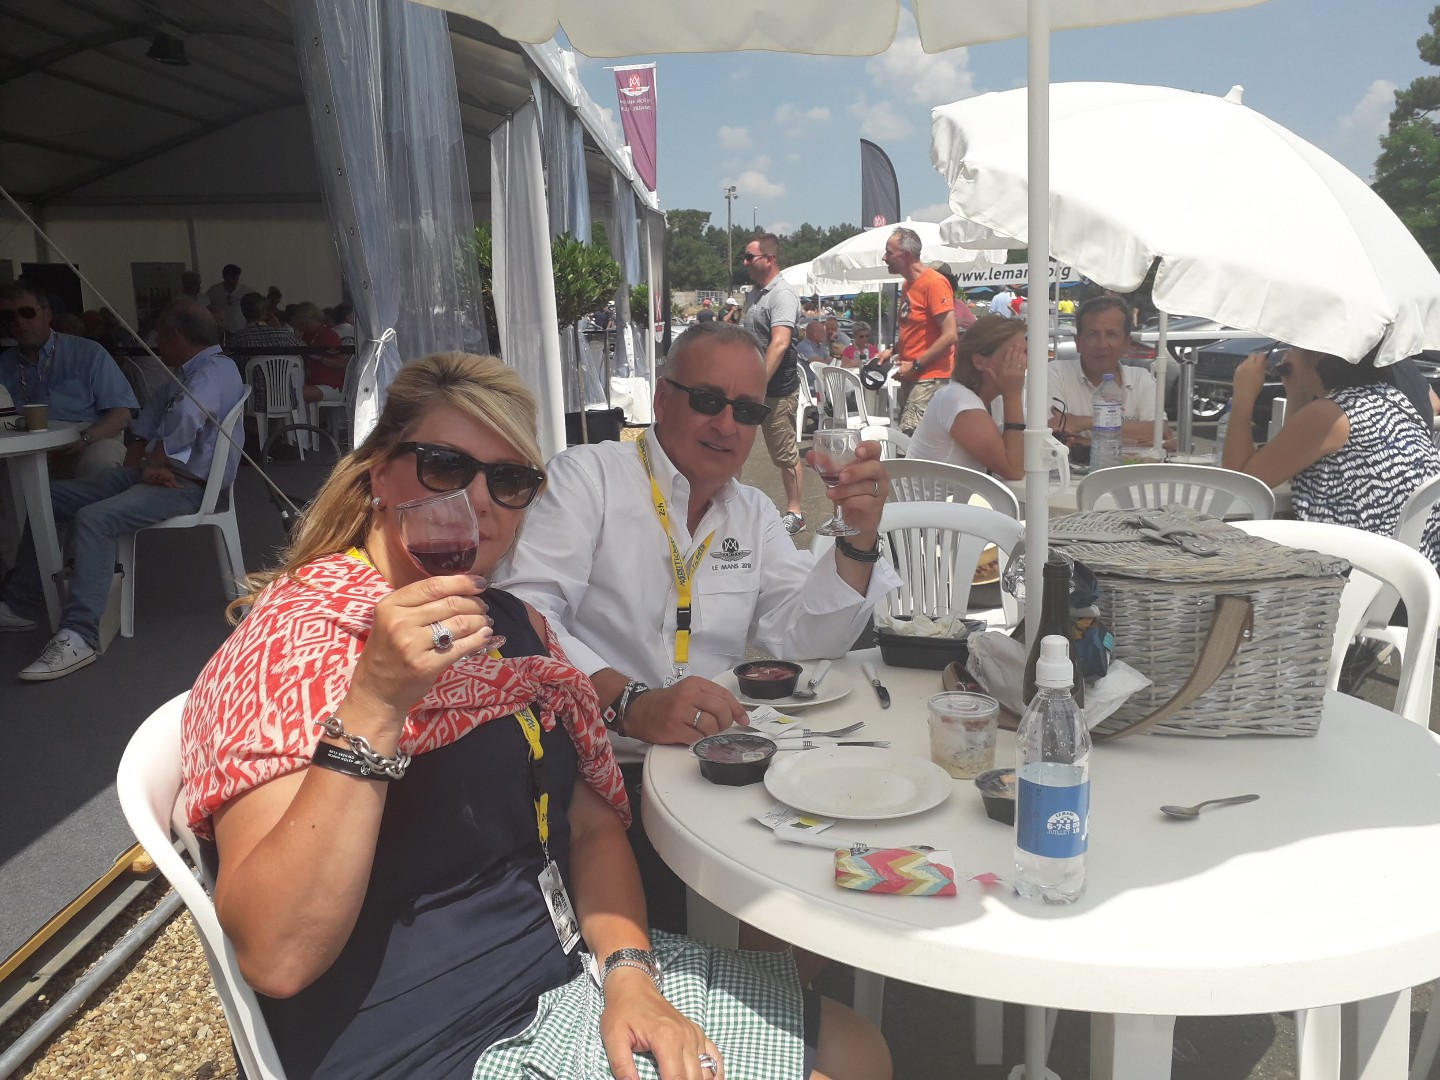 180706_Classic Le Mans_picnic2_AReed.jpg